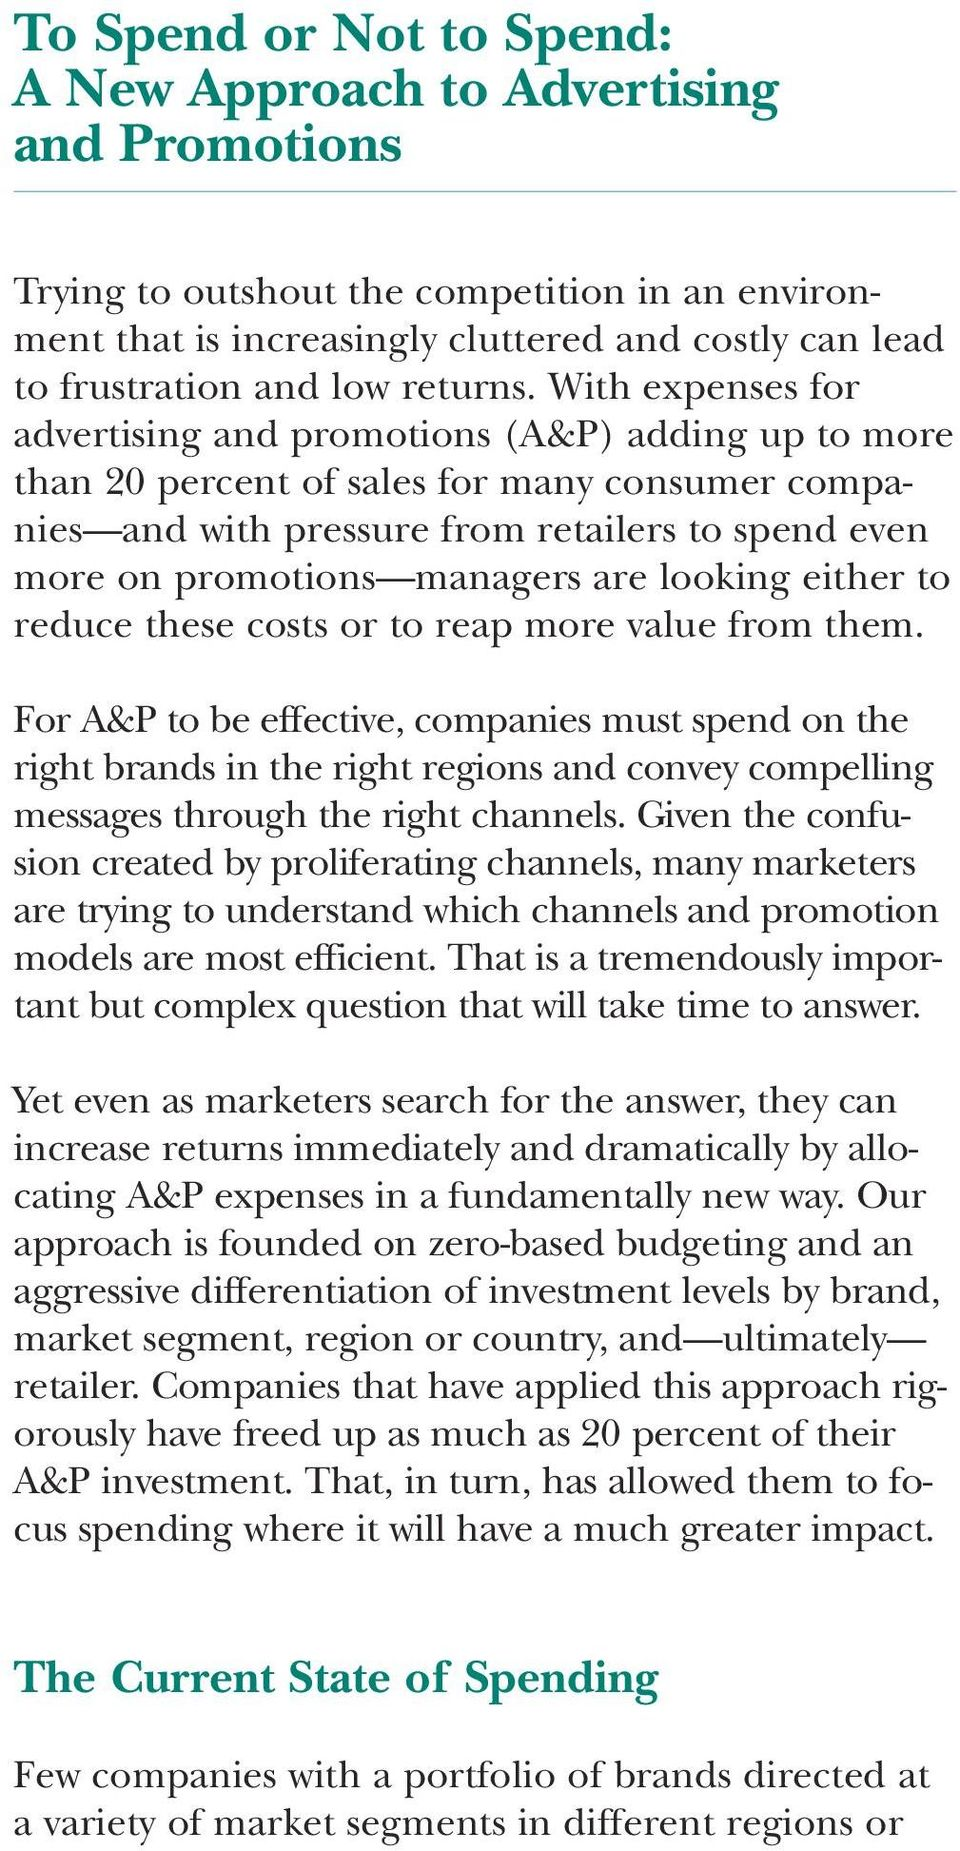 With expenses for advertising and promotions (A&P) adding up to more than 20 percent of sales for many consumer companies and with pressure from retailers to spend even more on promotions managers